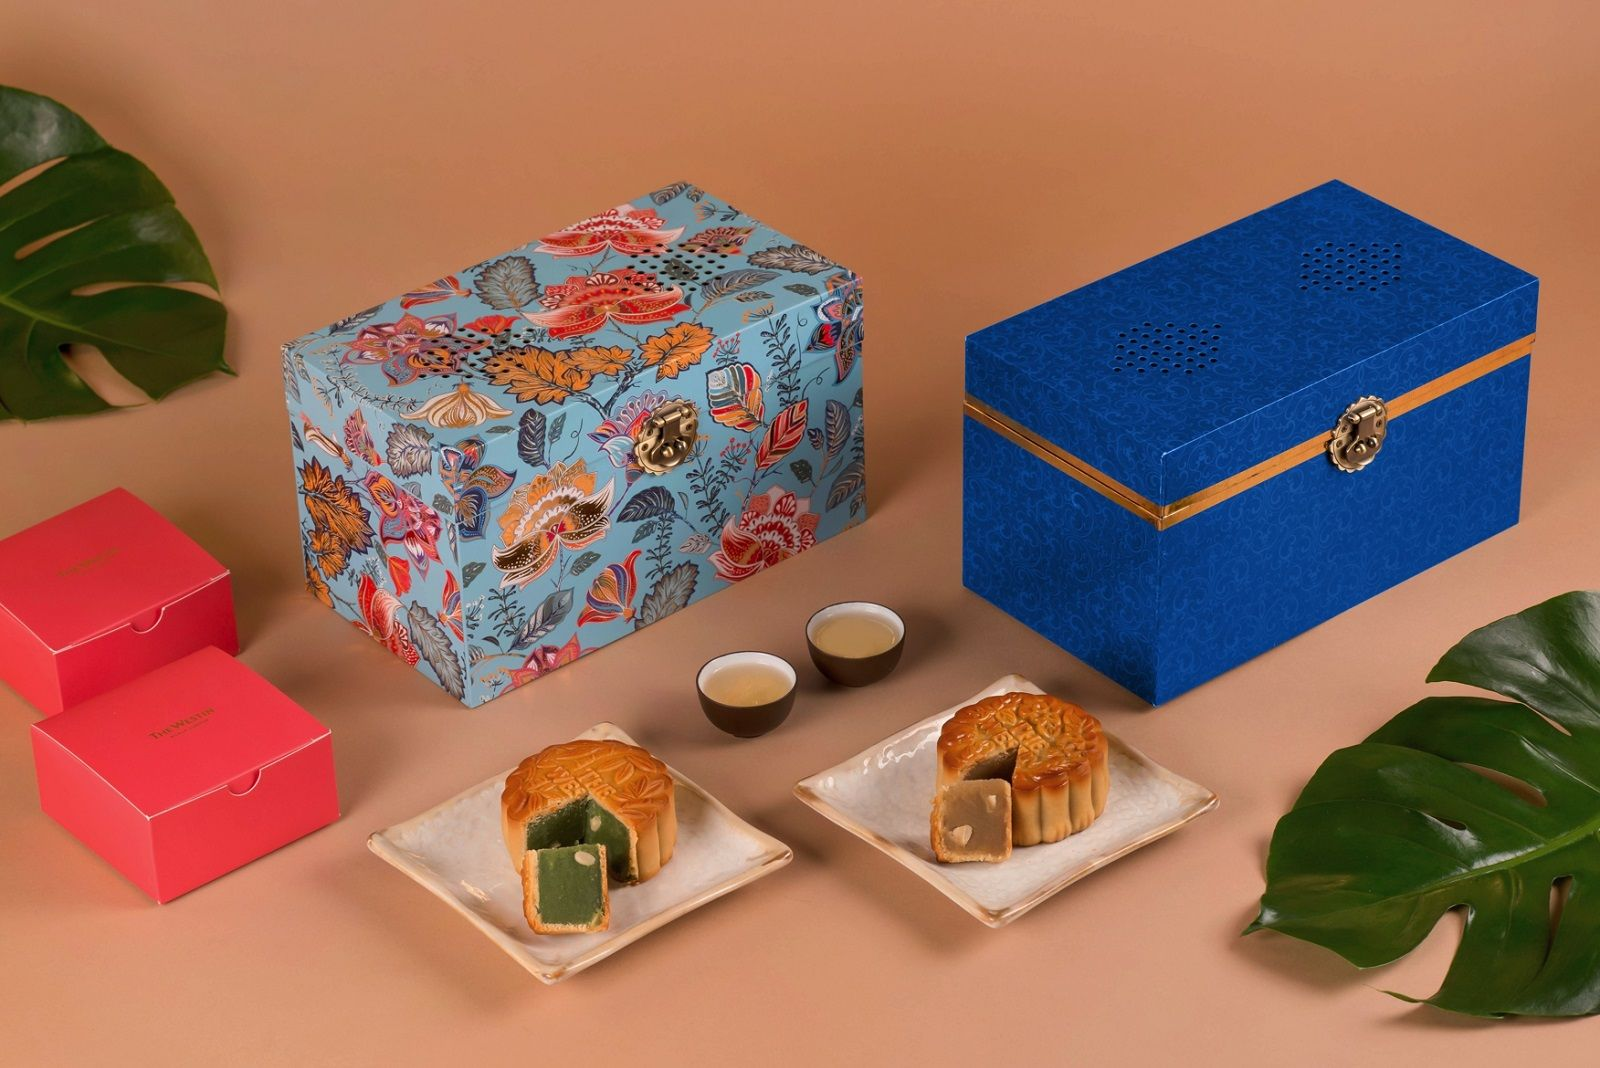 YUÈ Mooncake Gift Box, mooncakes kl 2017